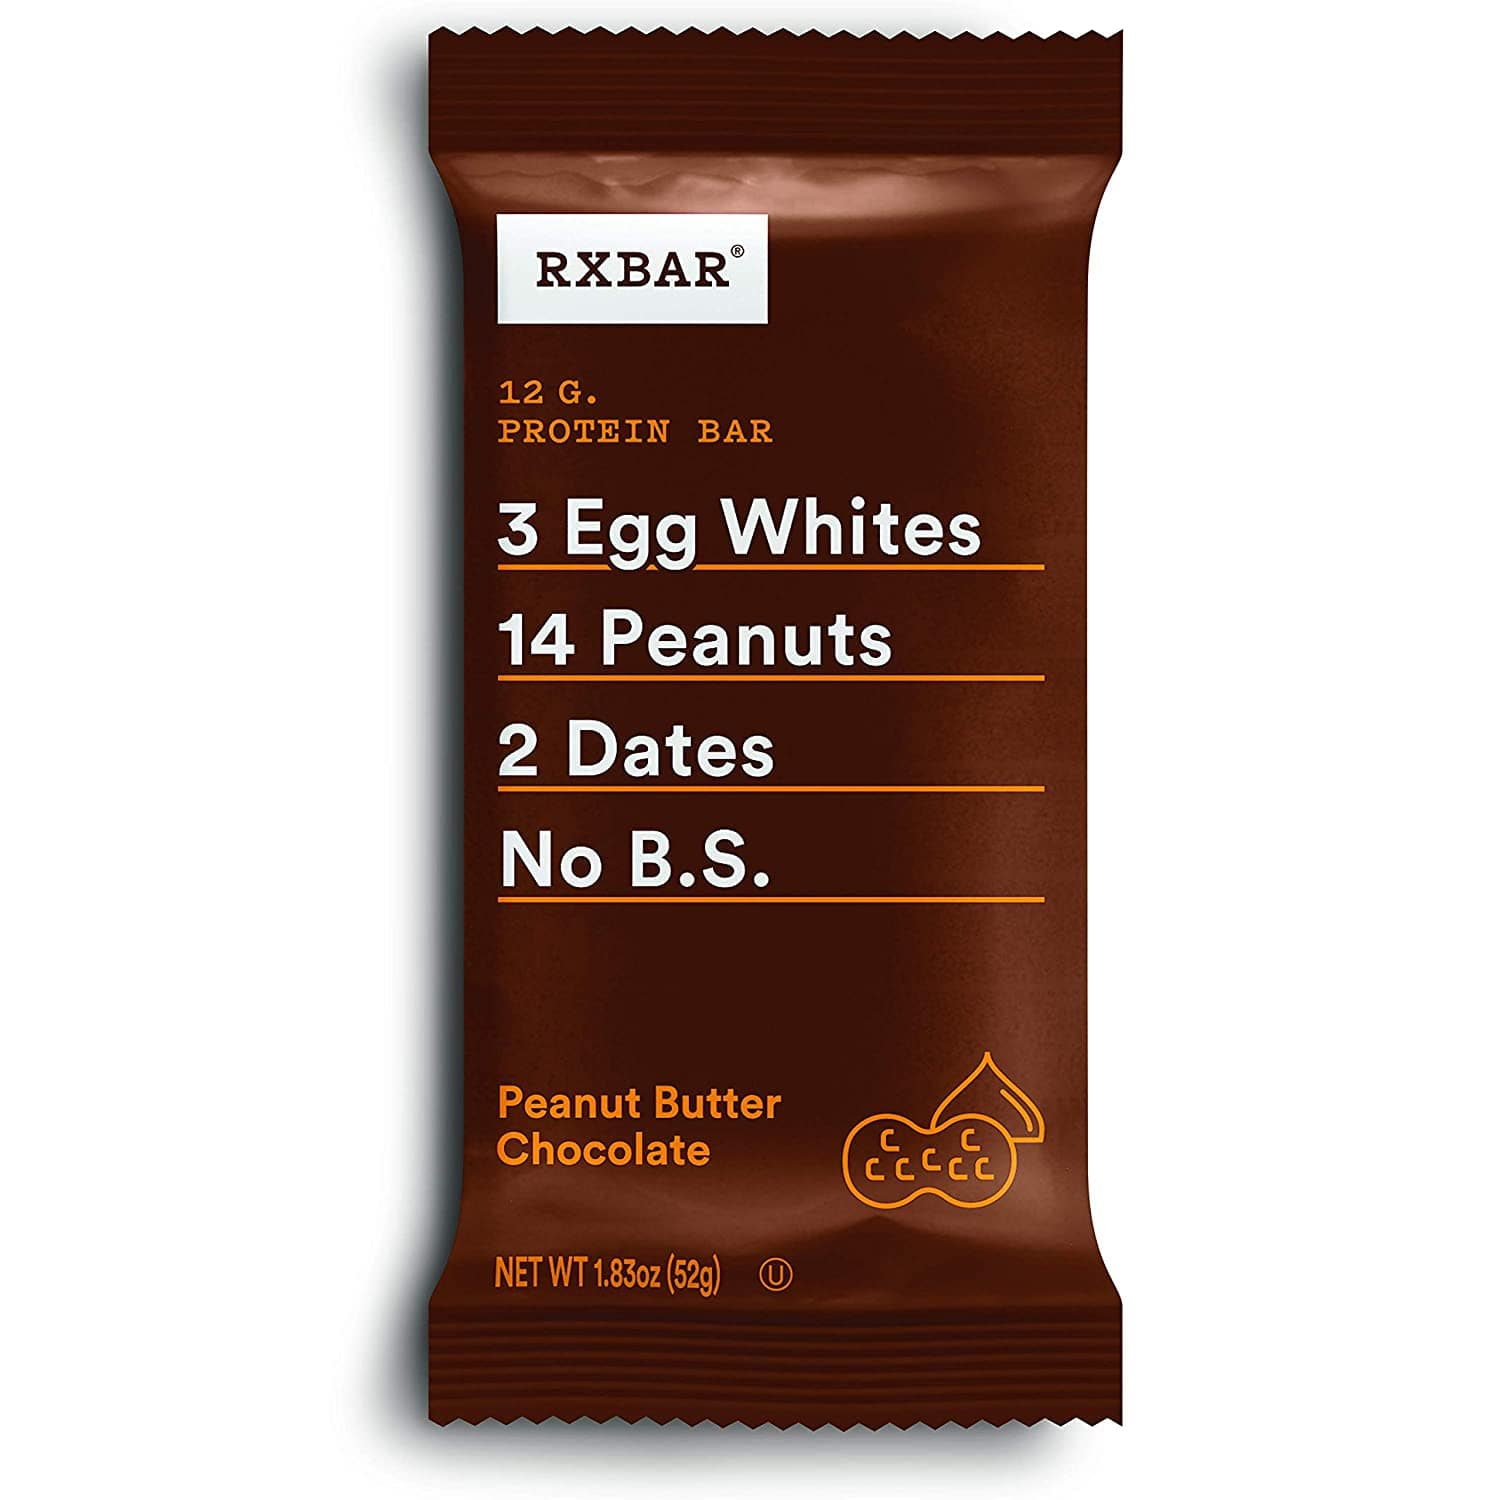 Amazon Warehouse: 12-Pack 1.83-Oz. RXBar Protein Bar (Various) from $8.03 + Free Shipping w/ Prime or on $25+